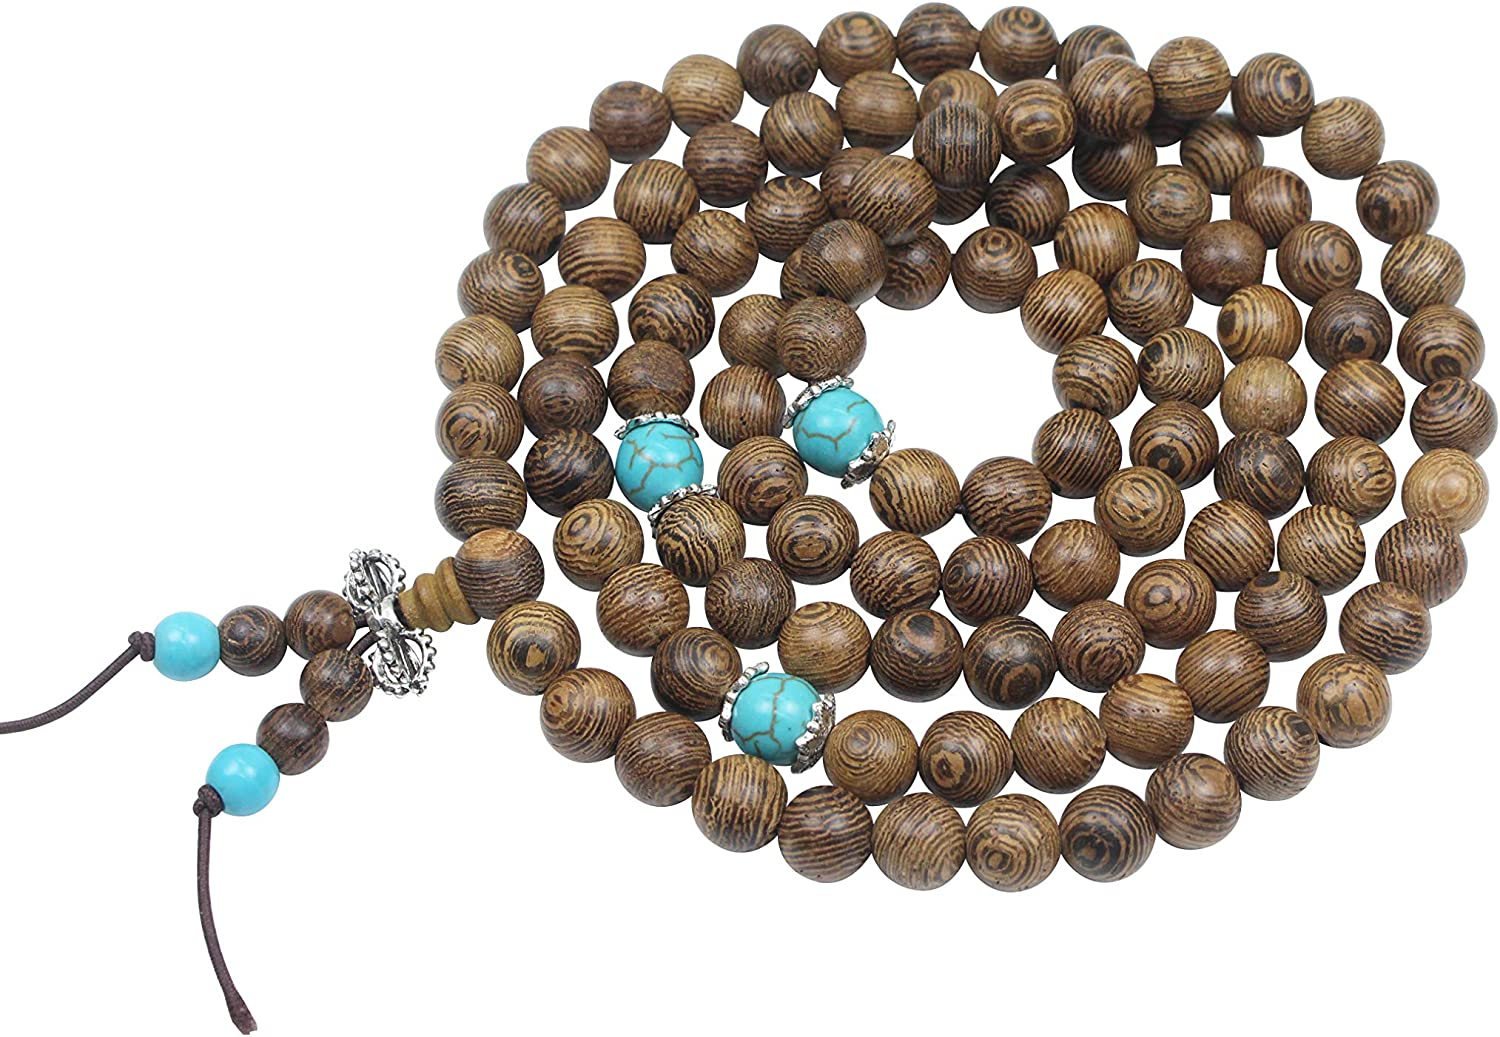 Prometis 108pcs Unisex Bracelet /& Necklace Elastic Natural Sandalwood Beads Strand Wood Prayer Beads Jewelry Gift for Your Loved Ones